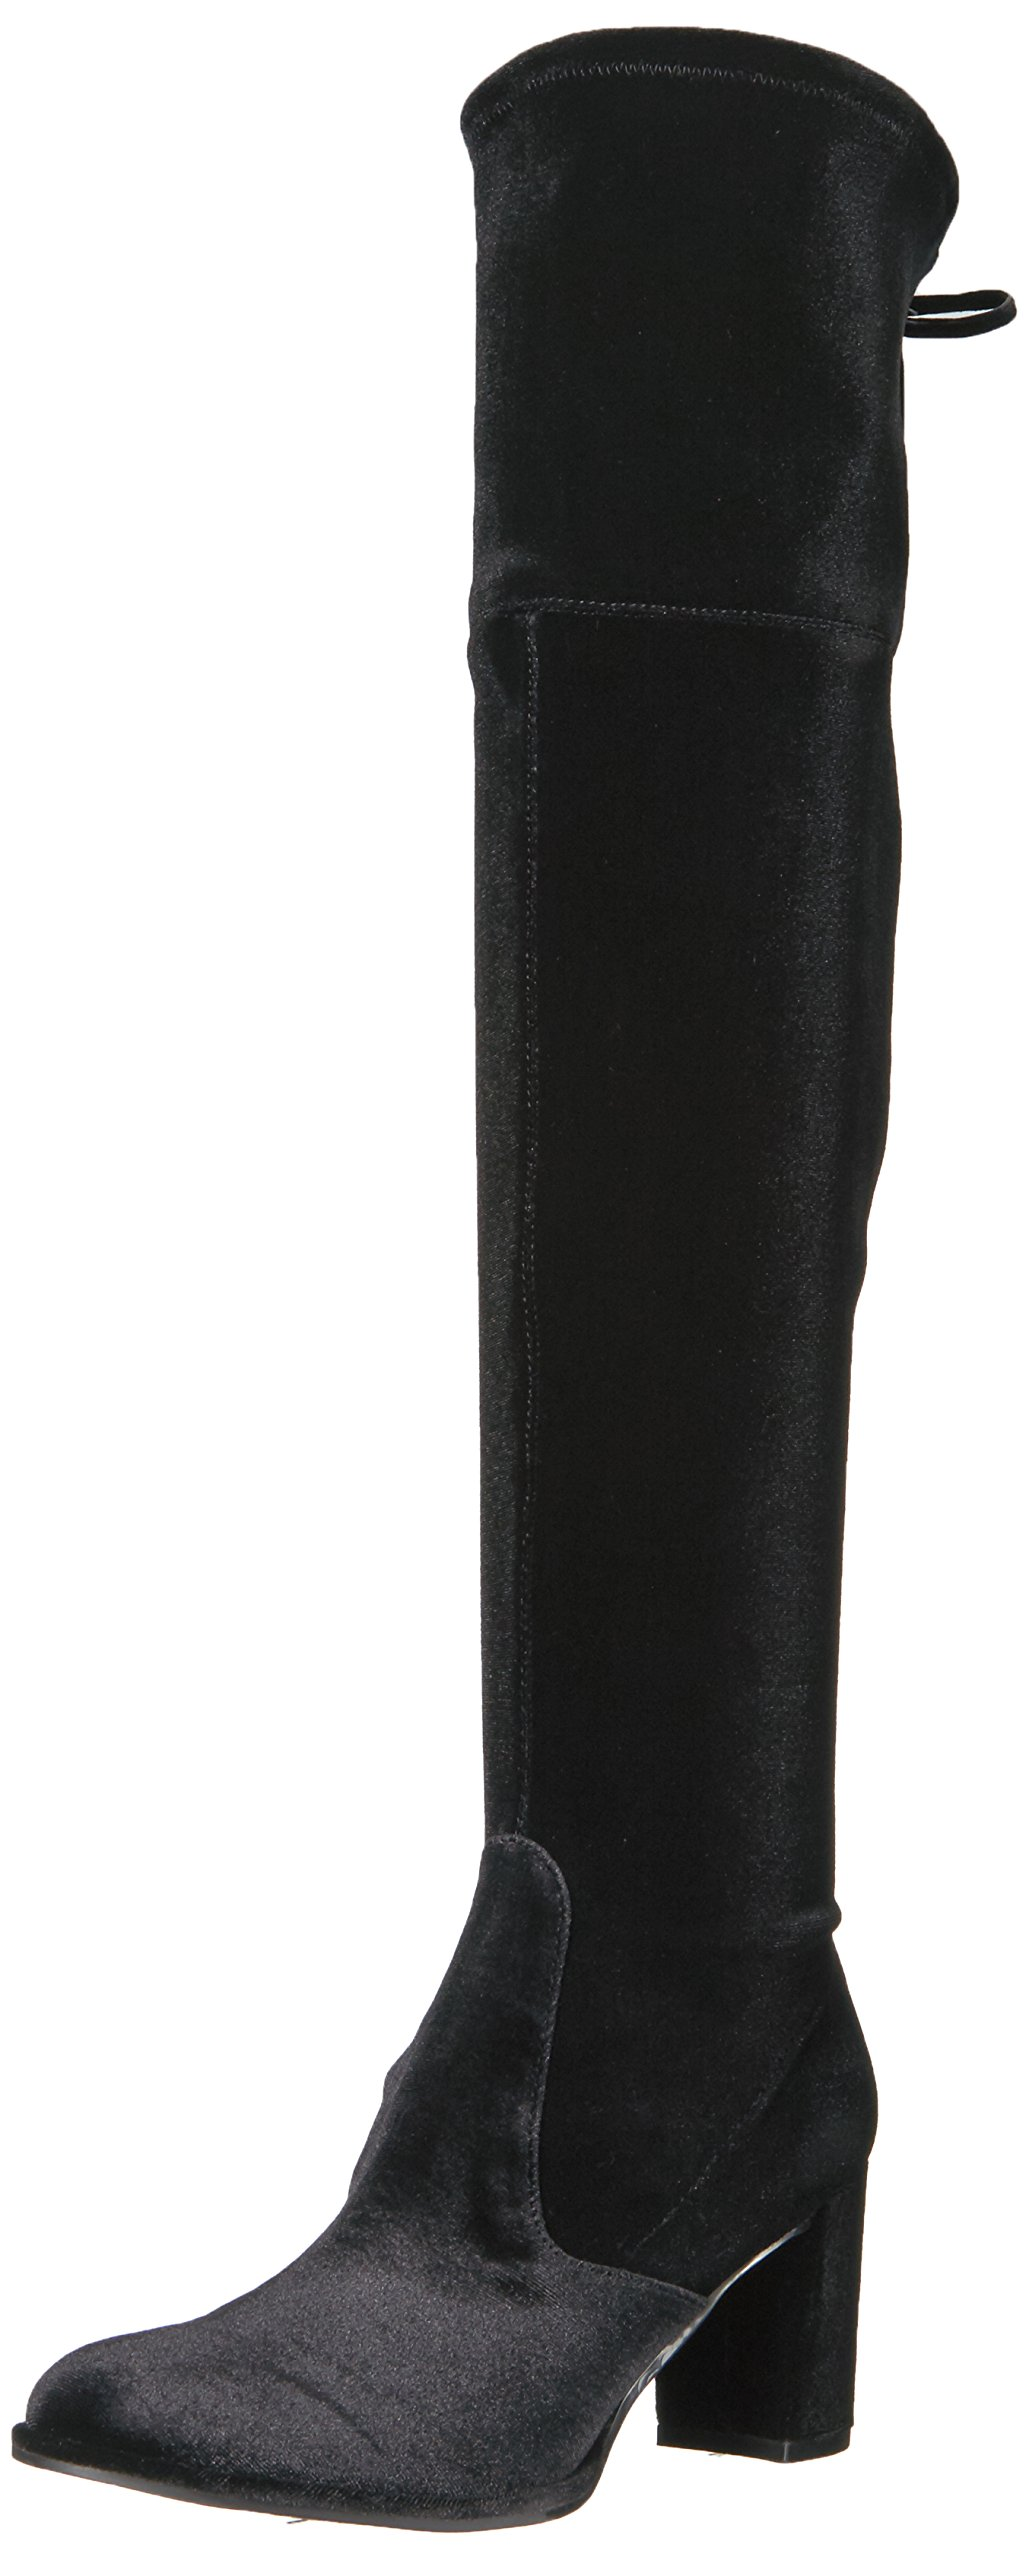 Marc Fisher Women's Lencon Over The Knee Boot, Black, 7 Medium US